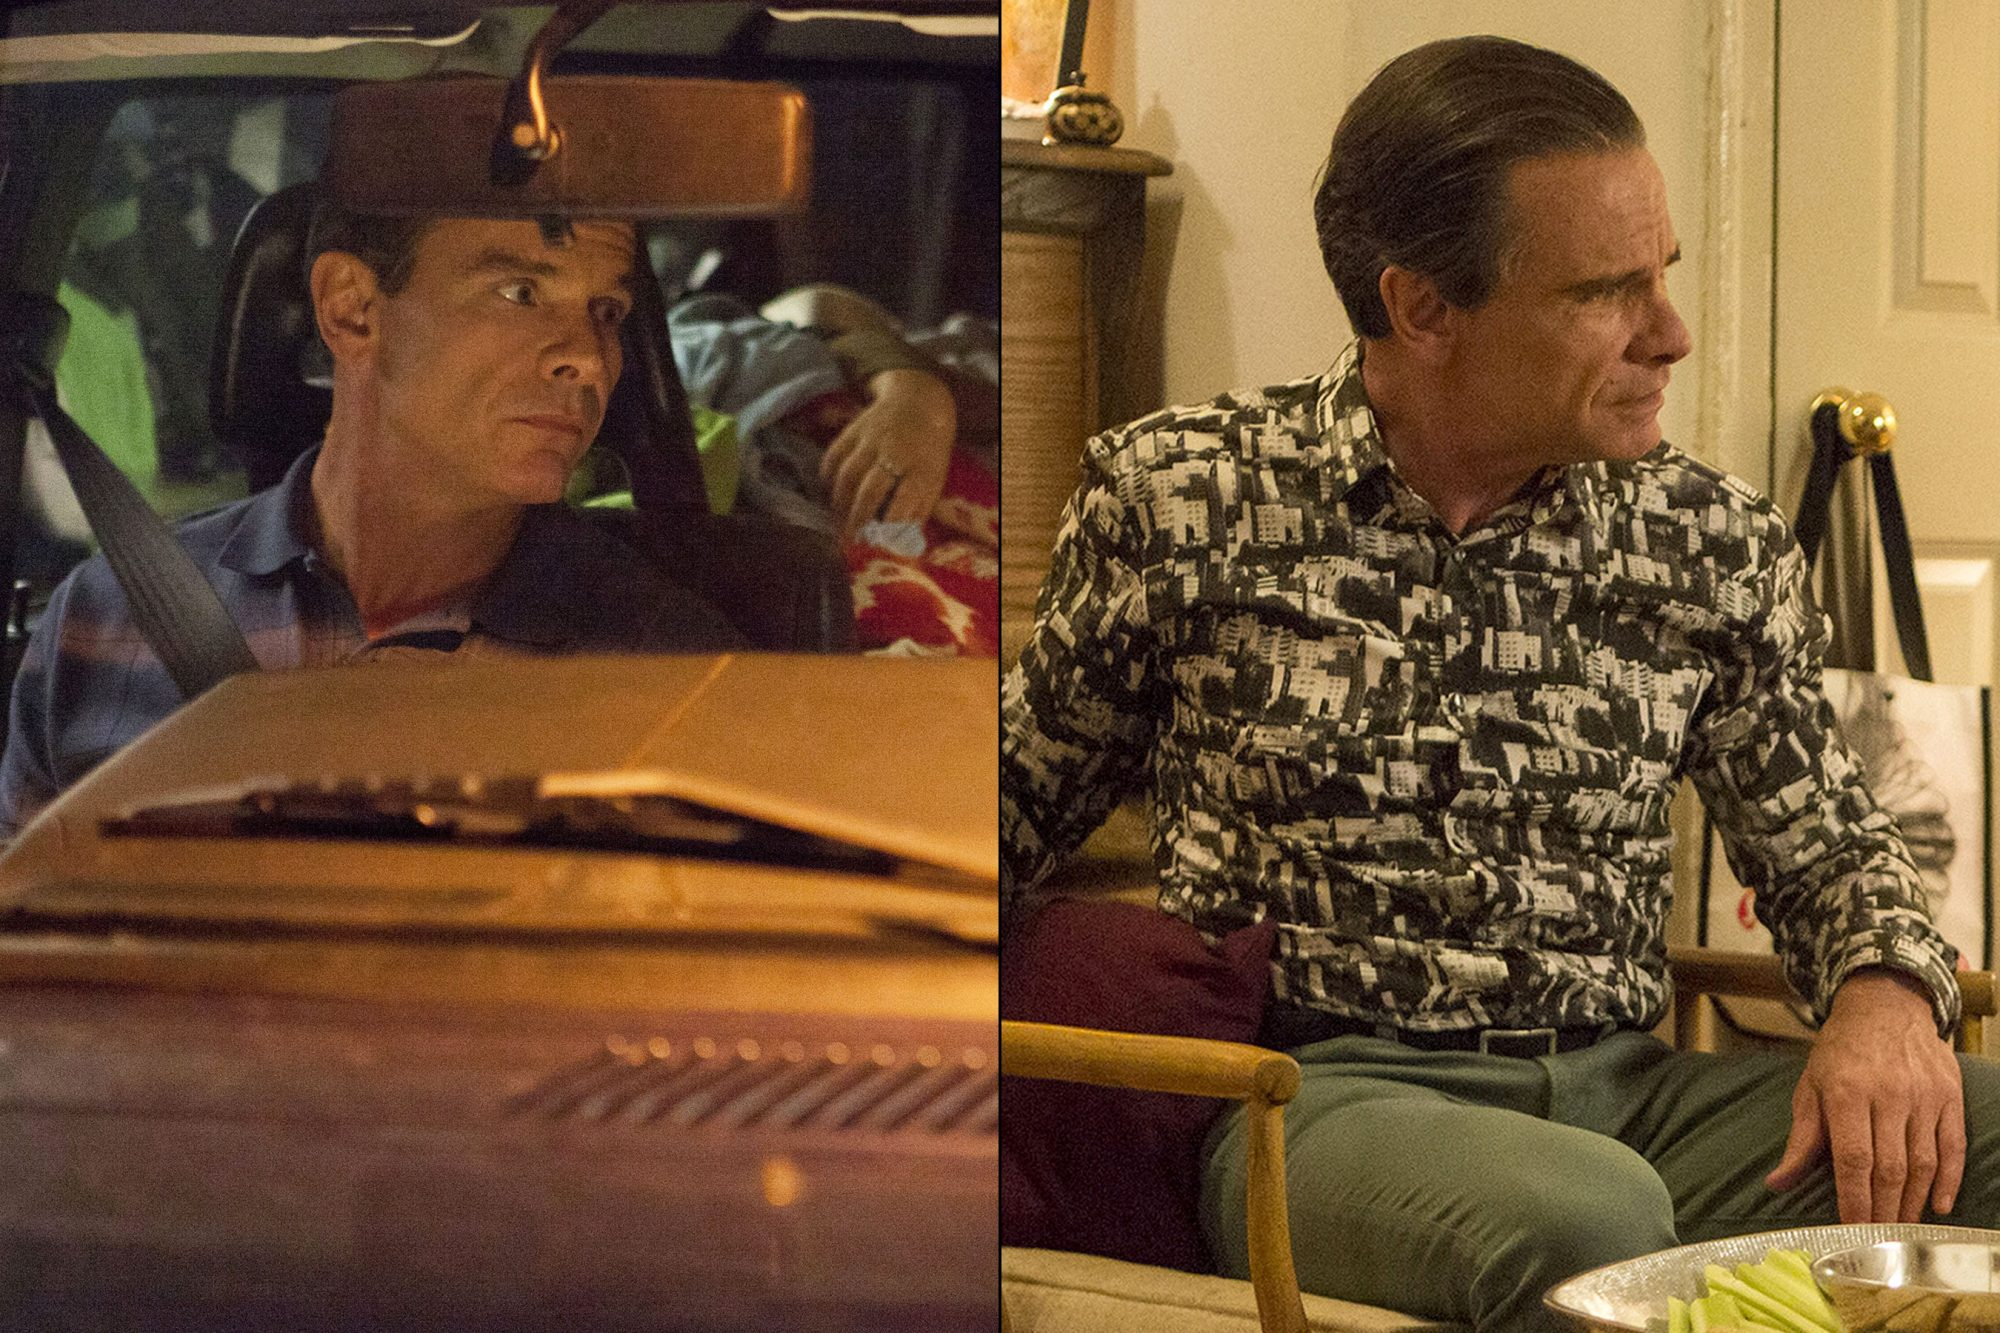 Peter Scolari as Tad Horvath in Season 1; Peter Scolari as Tad Horvath in Season 6